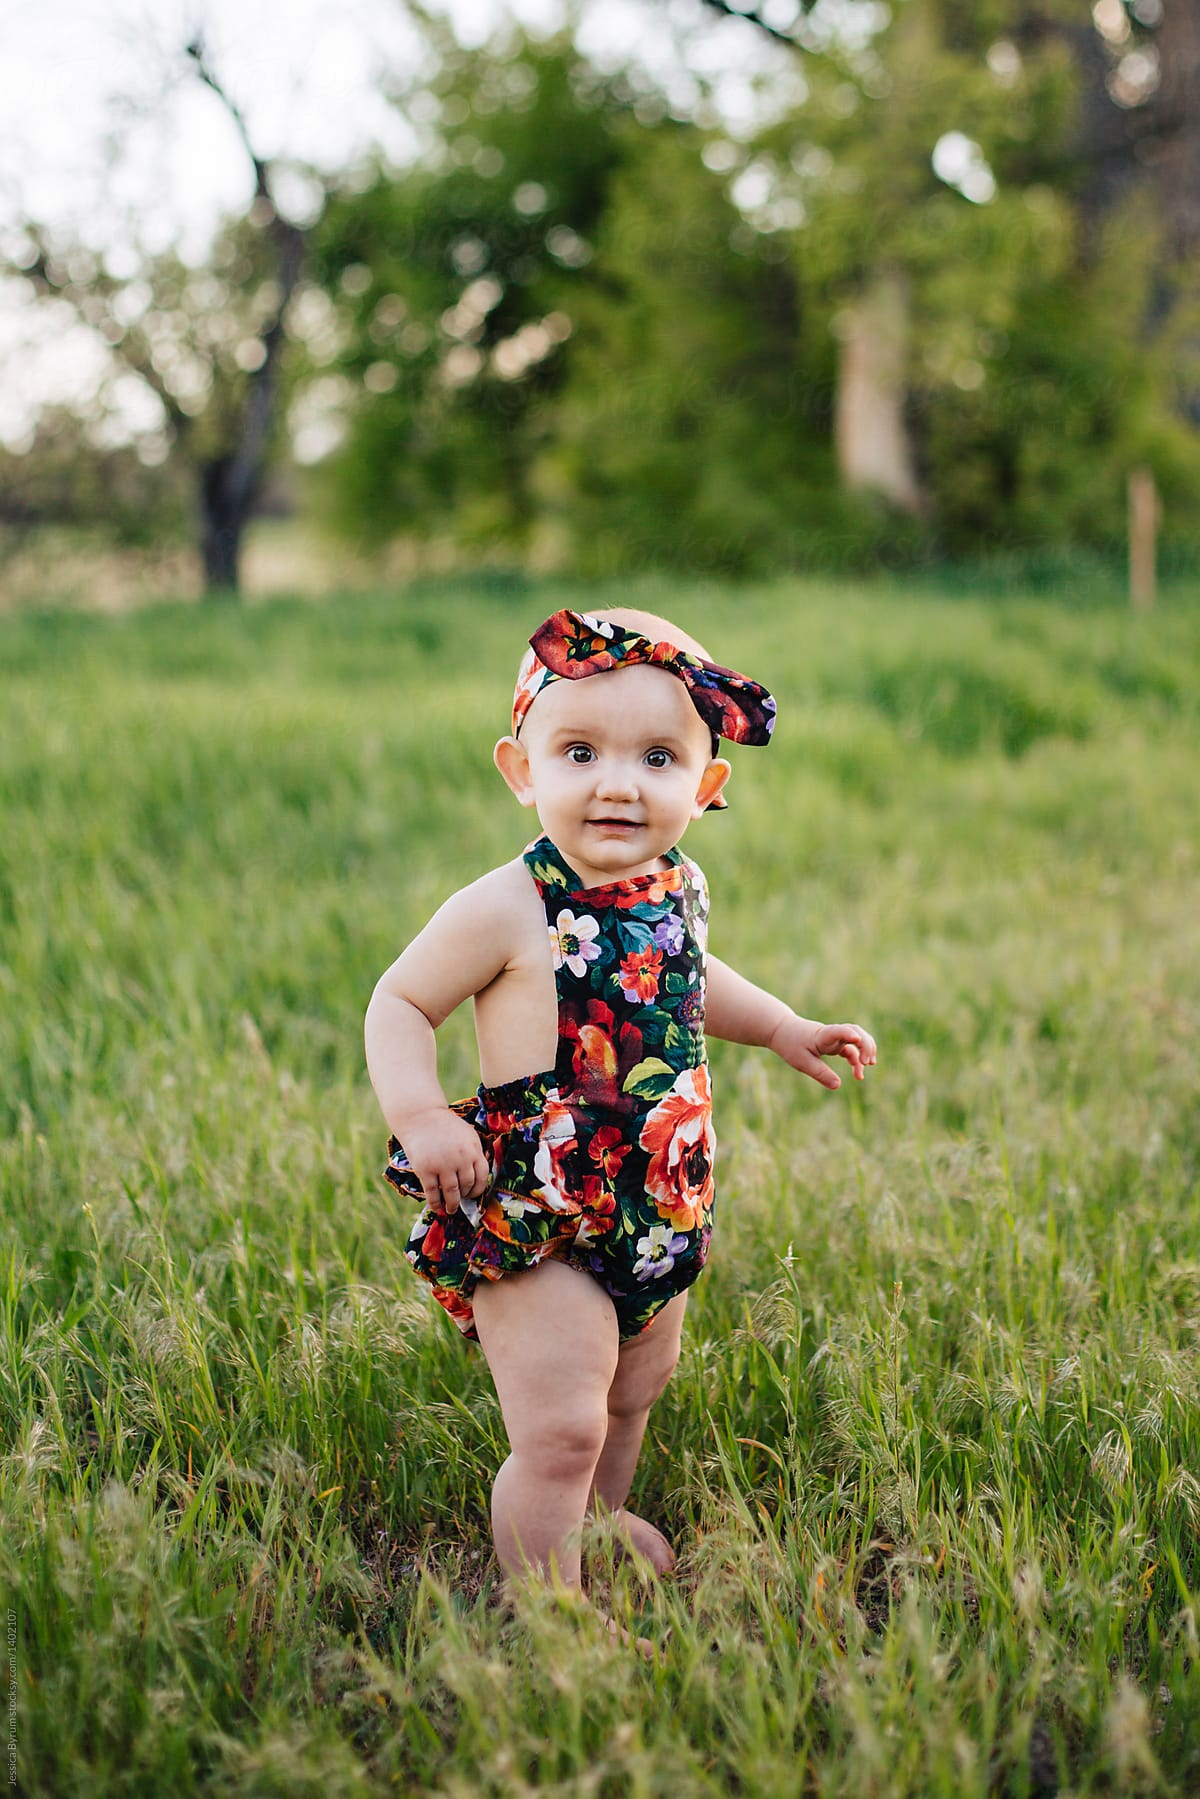 Cute one-year old girl in floral romper and headband outside in tall grass.